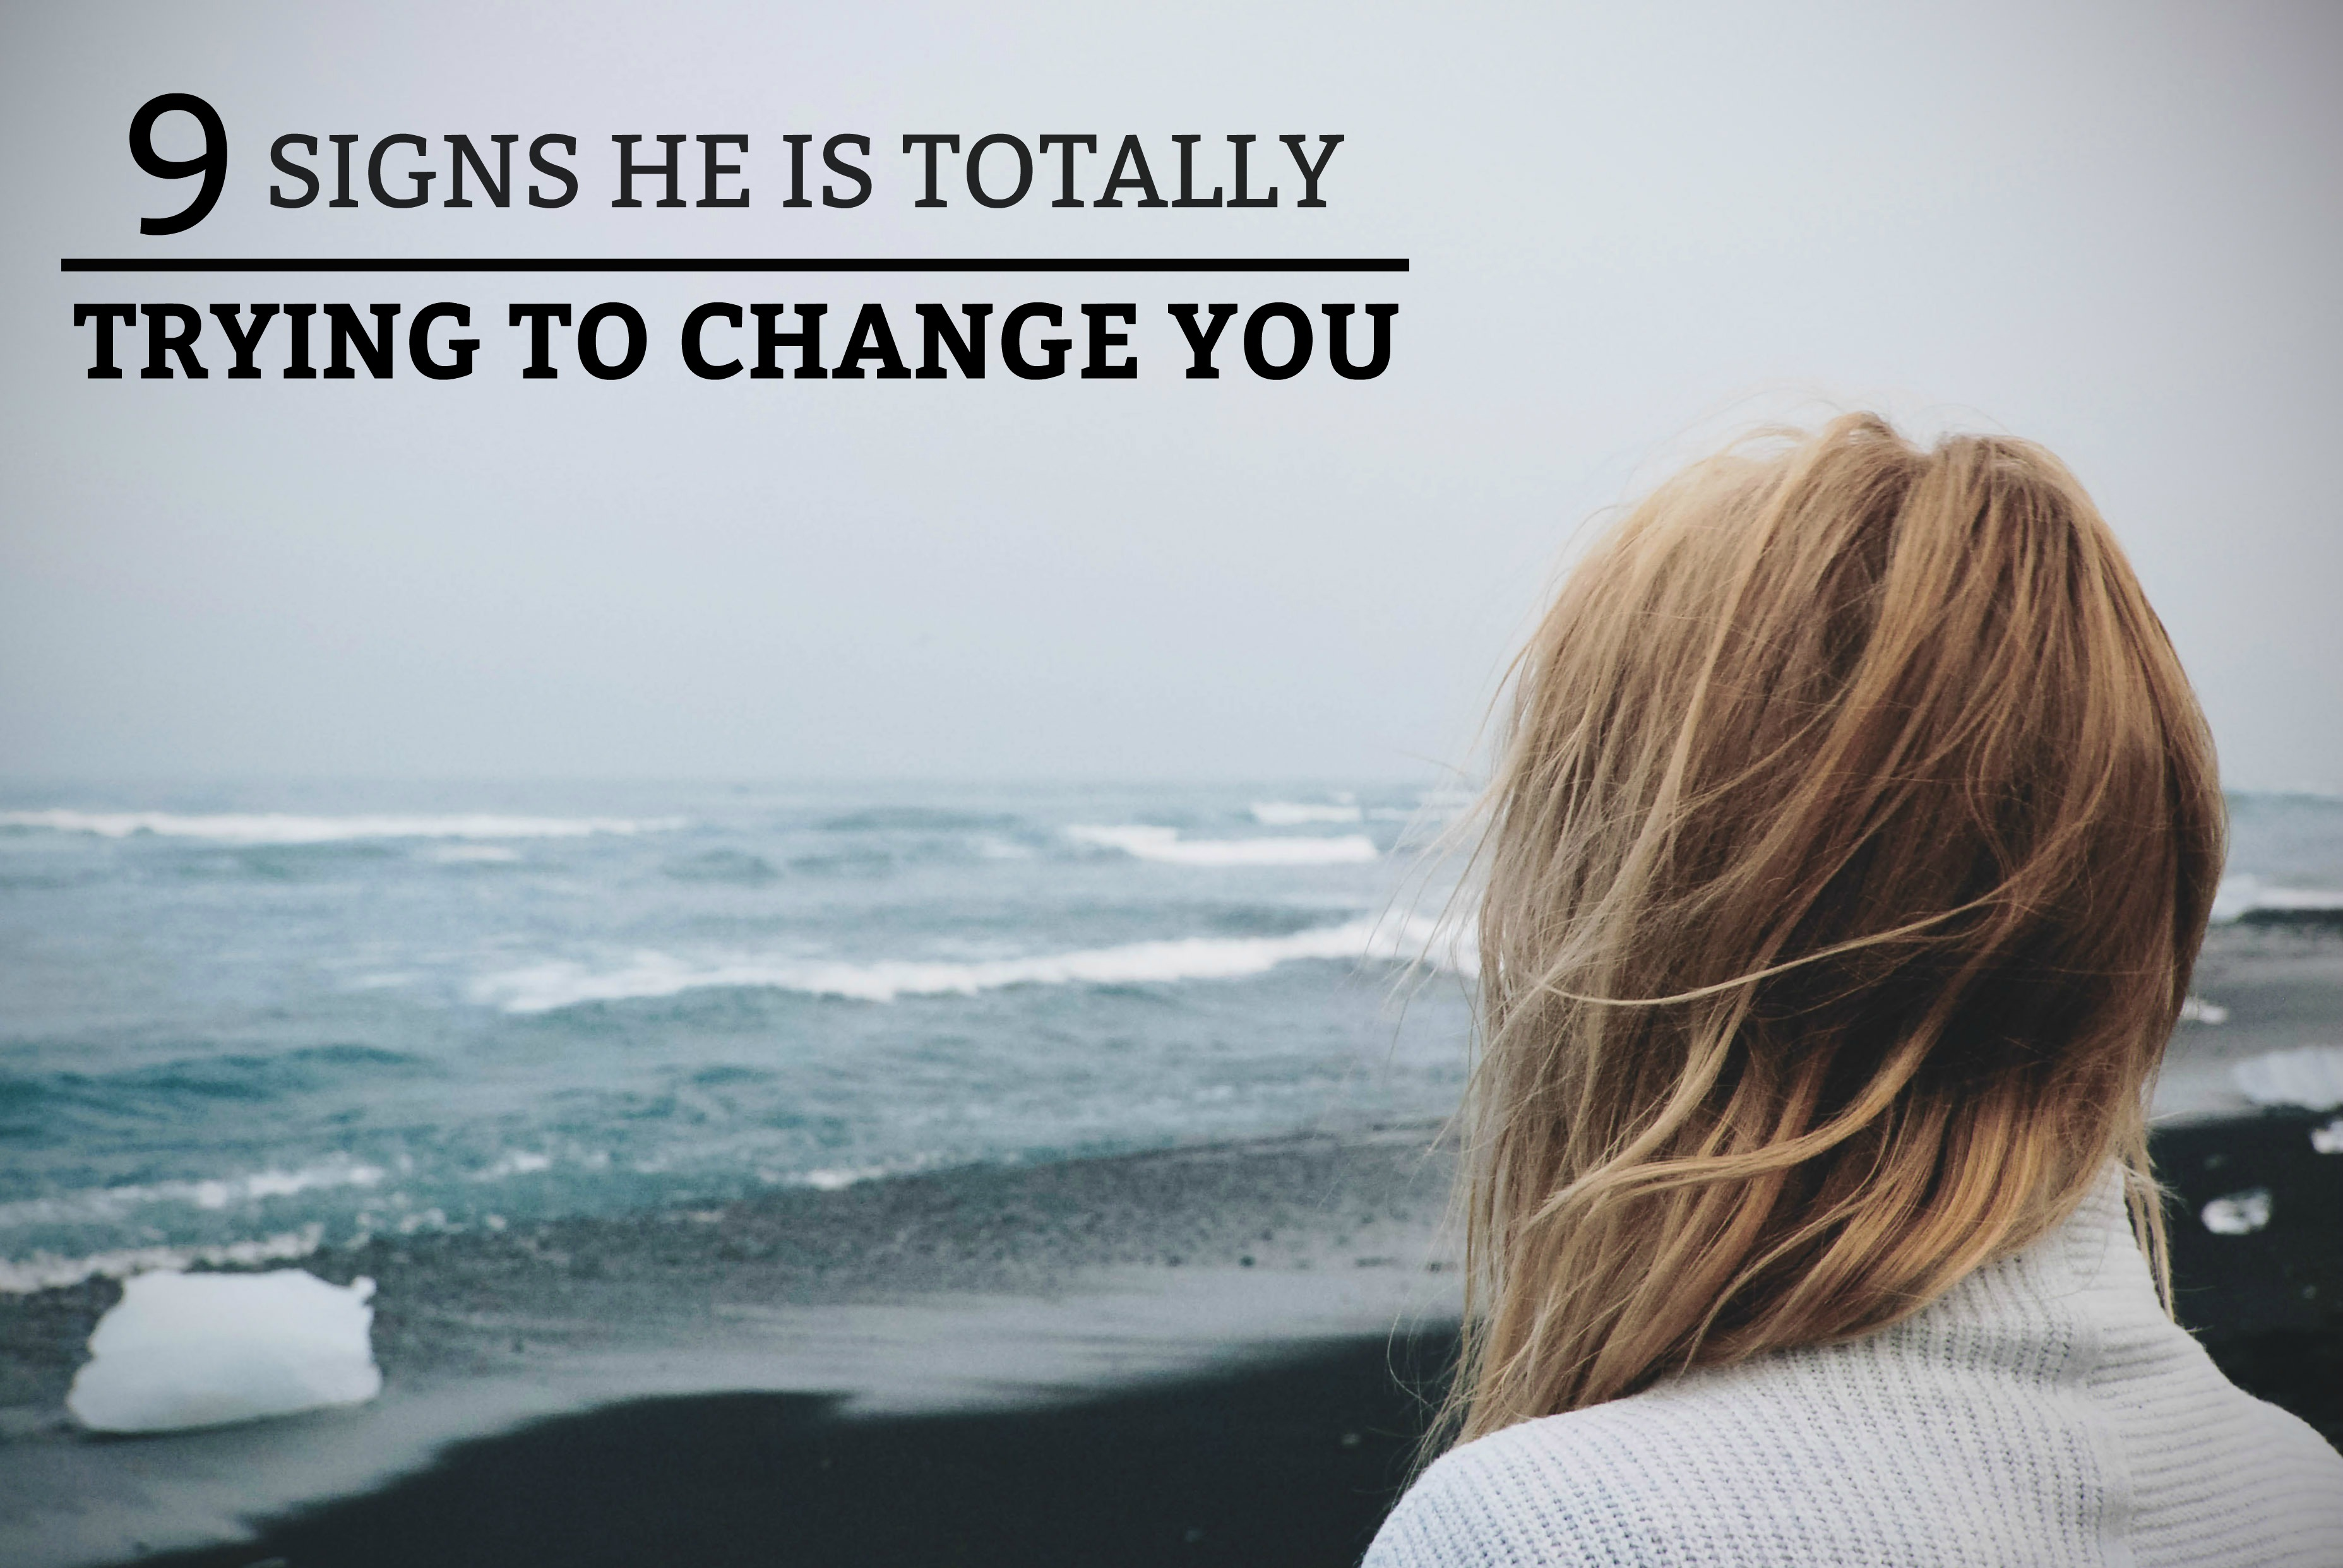 9 Signs He is Totally Trying to Change You - a practical guide on how to tell if your man is trying to change who you are. www.tradingaverage.com